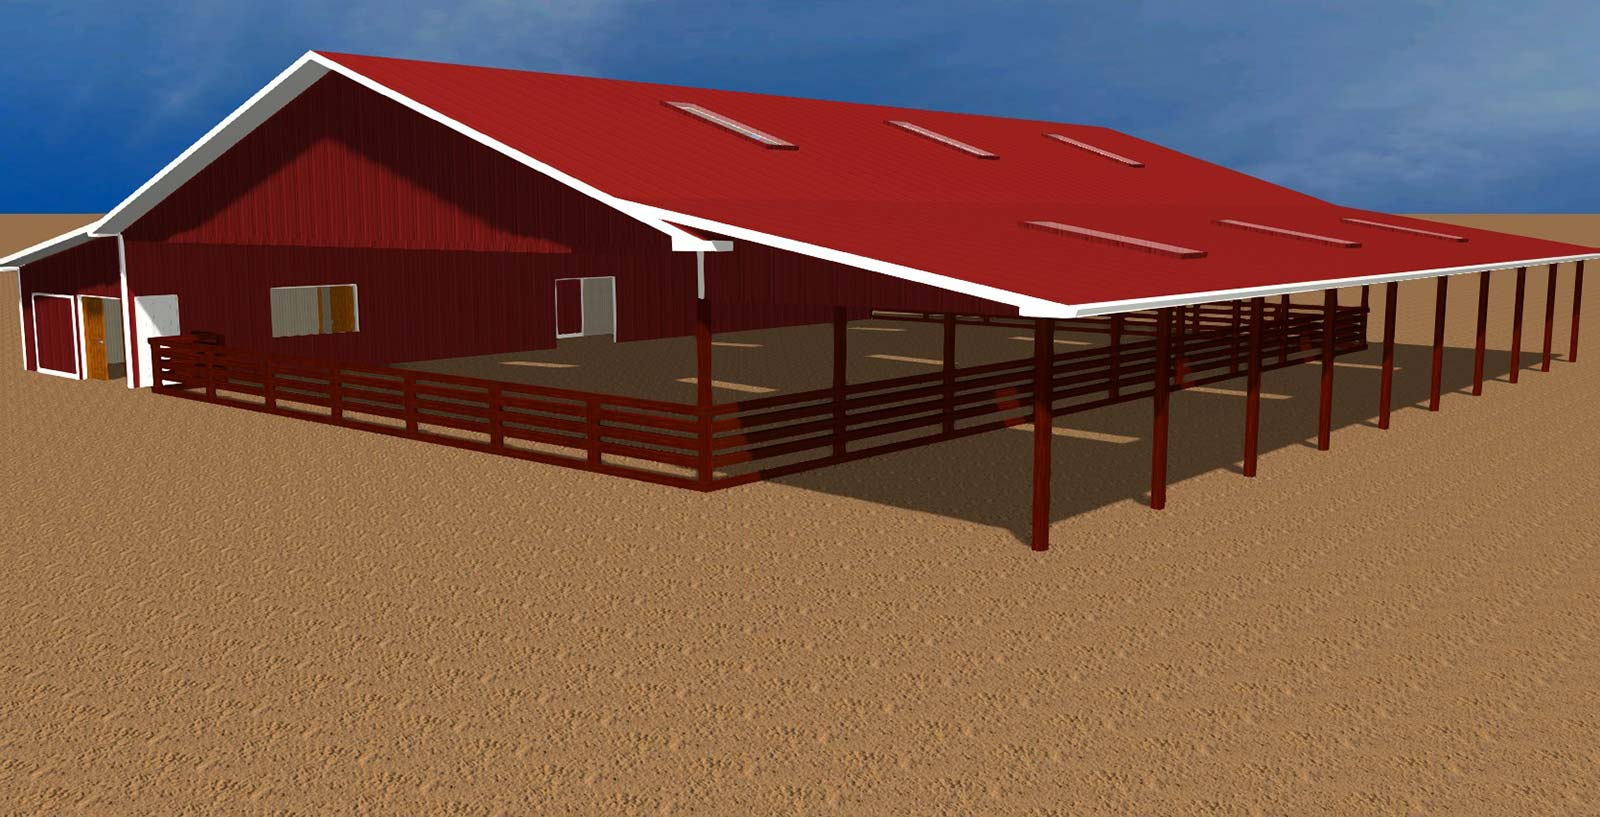 Alternate view computer rendering of Equestrian Facility design